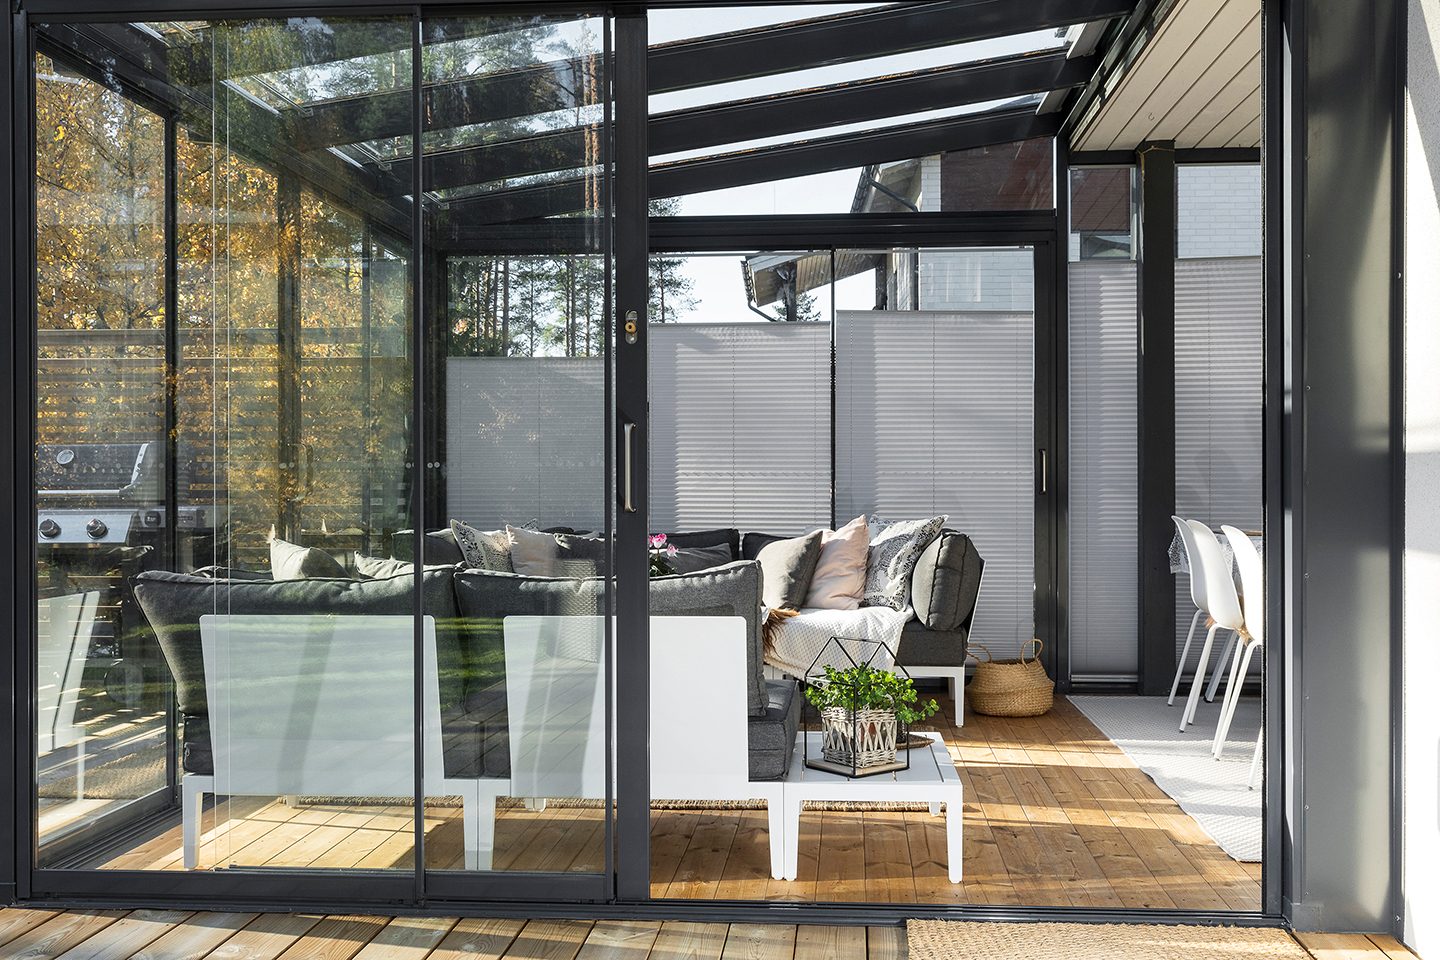 sunrooms, sunrooms in bc, sunrooms in canada, sunrooms in langley, sunrooms in vancouver